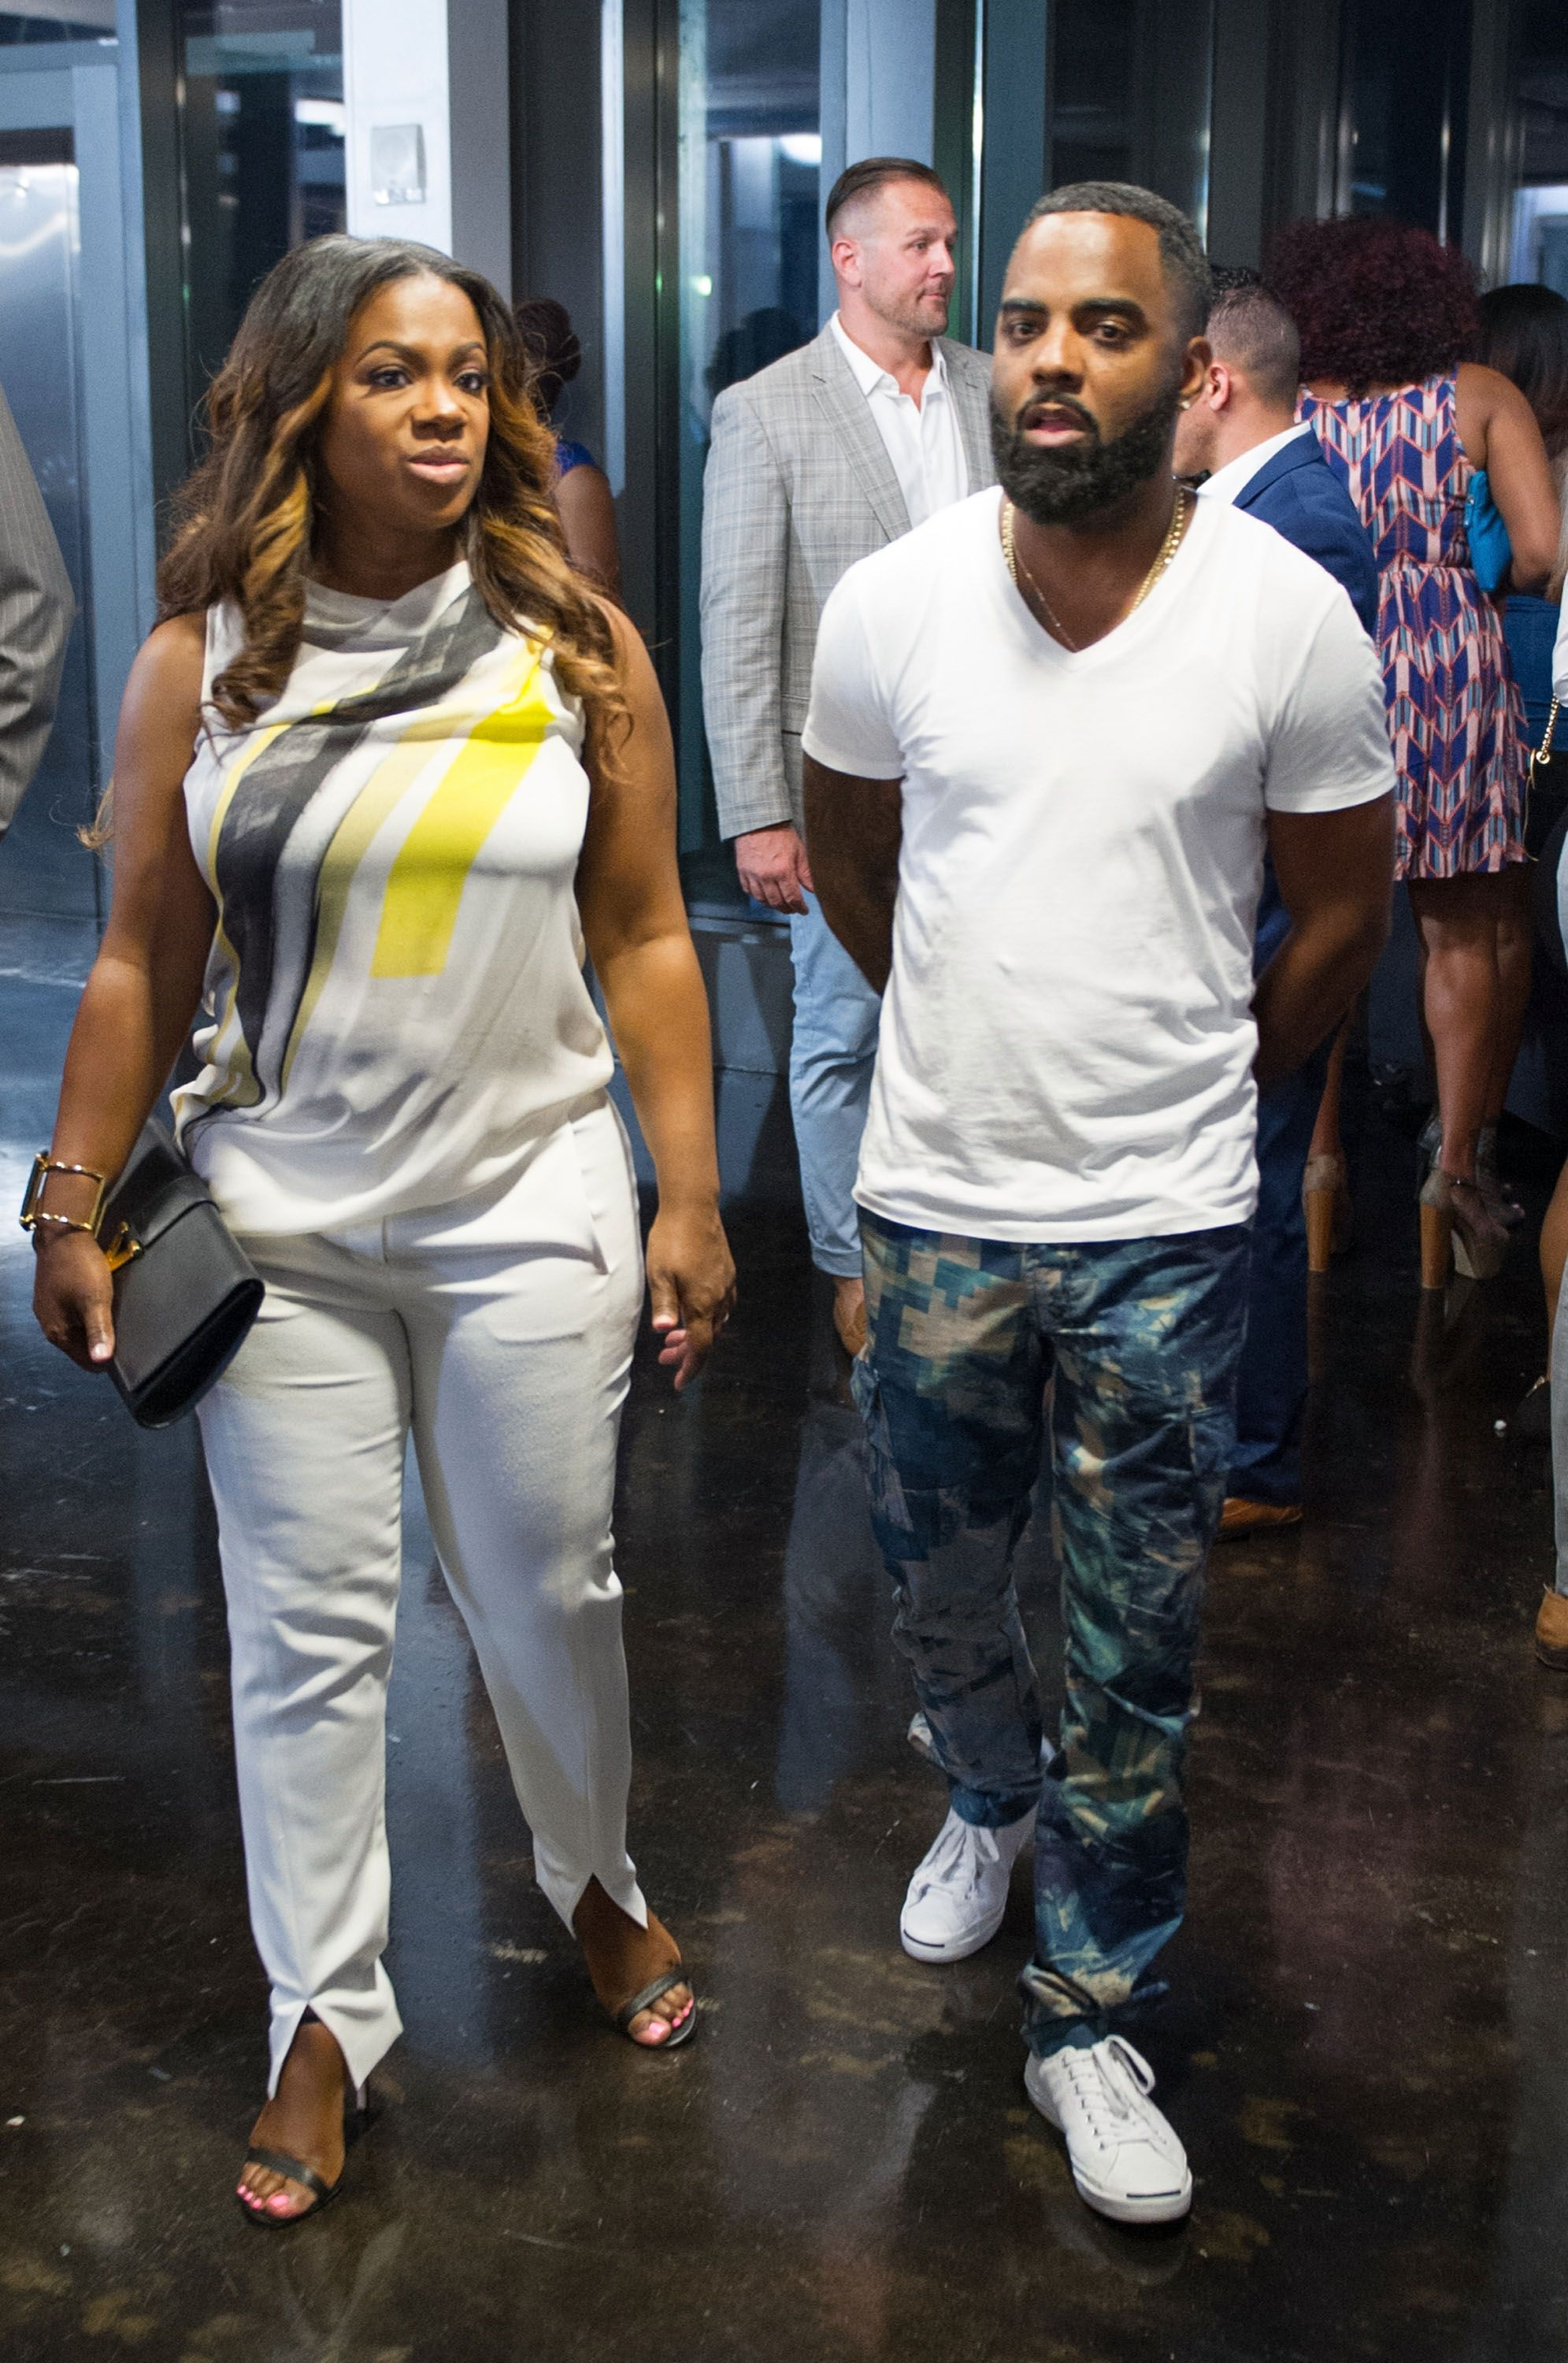 Kandi Burruss-Tucker and Todd Tucker attend Cynthia Bailey Eyewear launch party at Ventanas on August 7, 2015 in Atlanta, Georgia | Photo: Getty Images